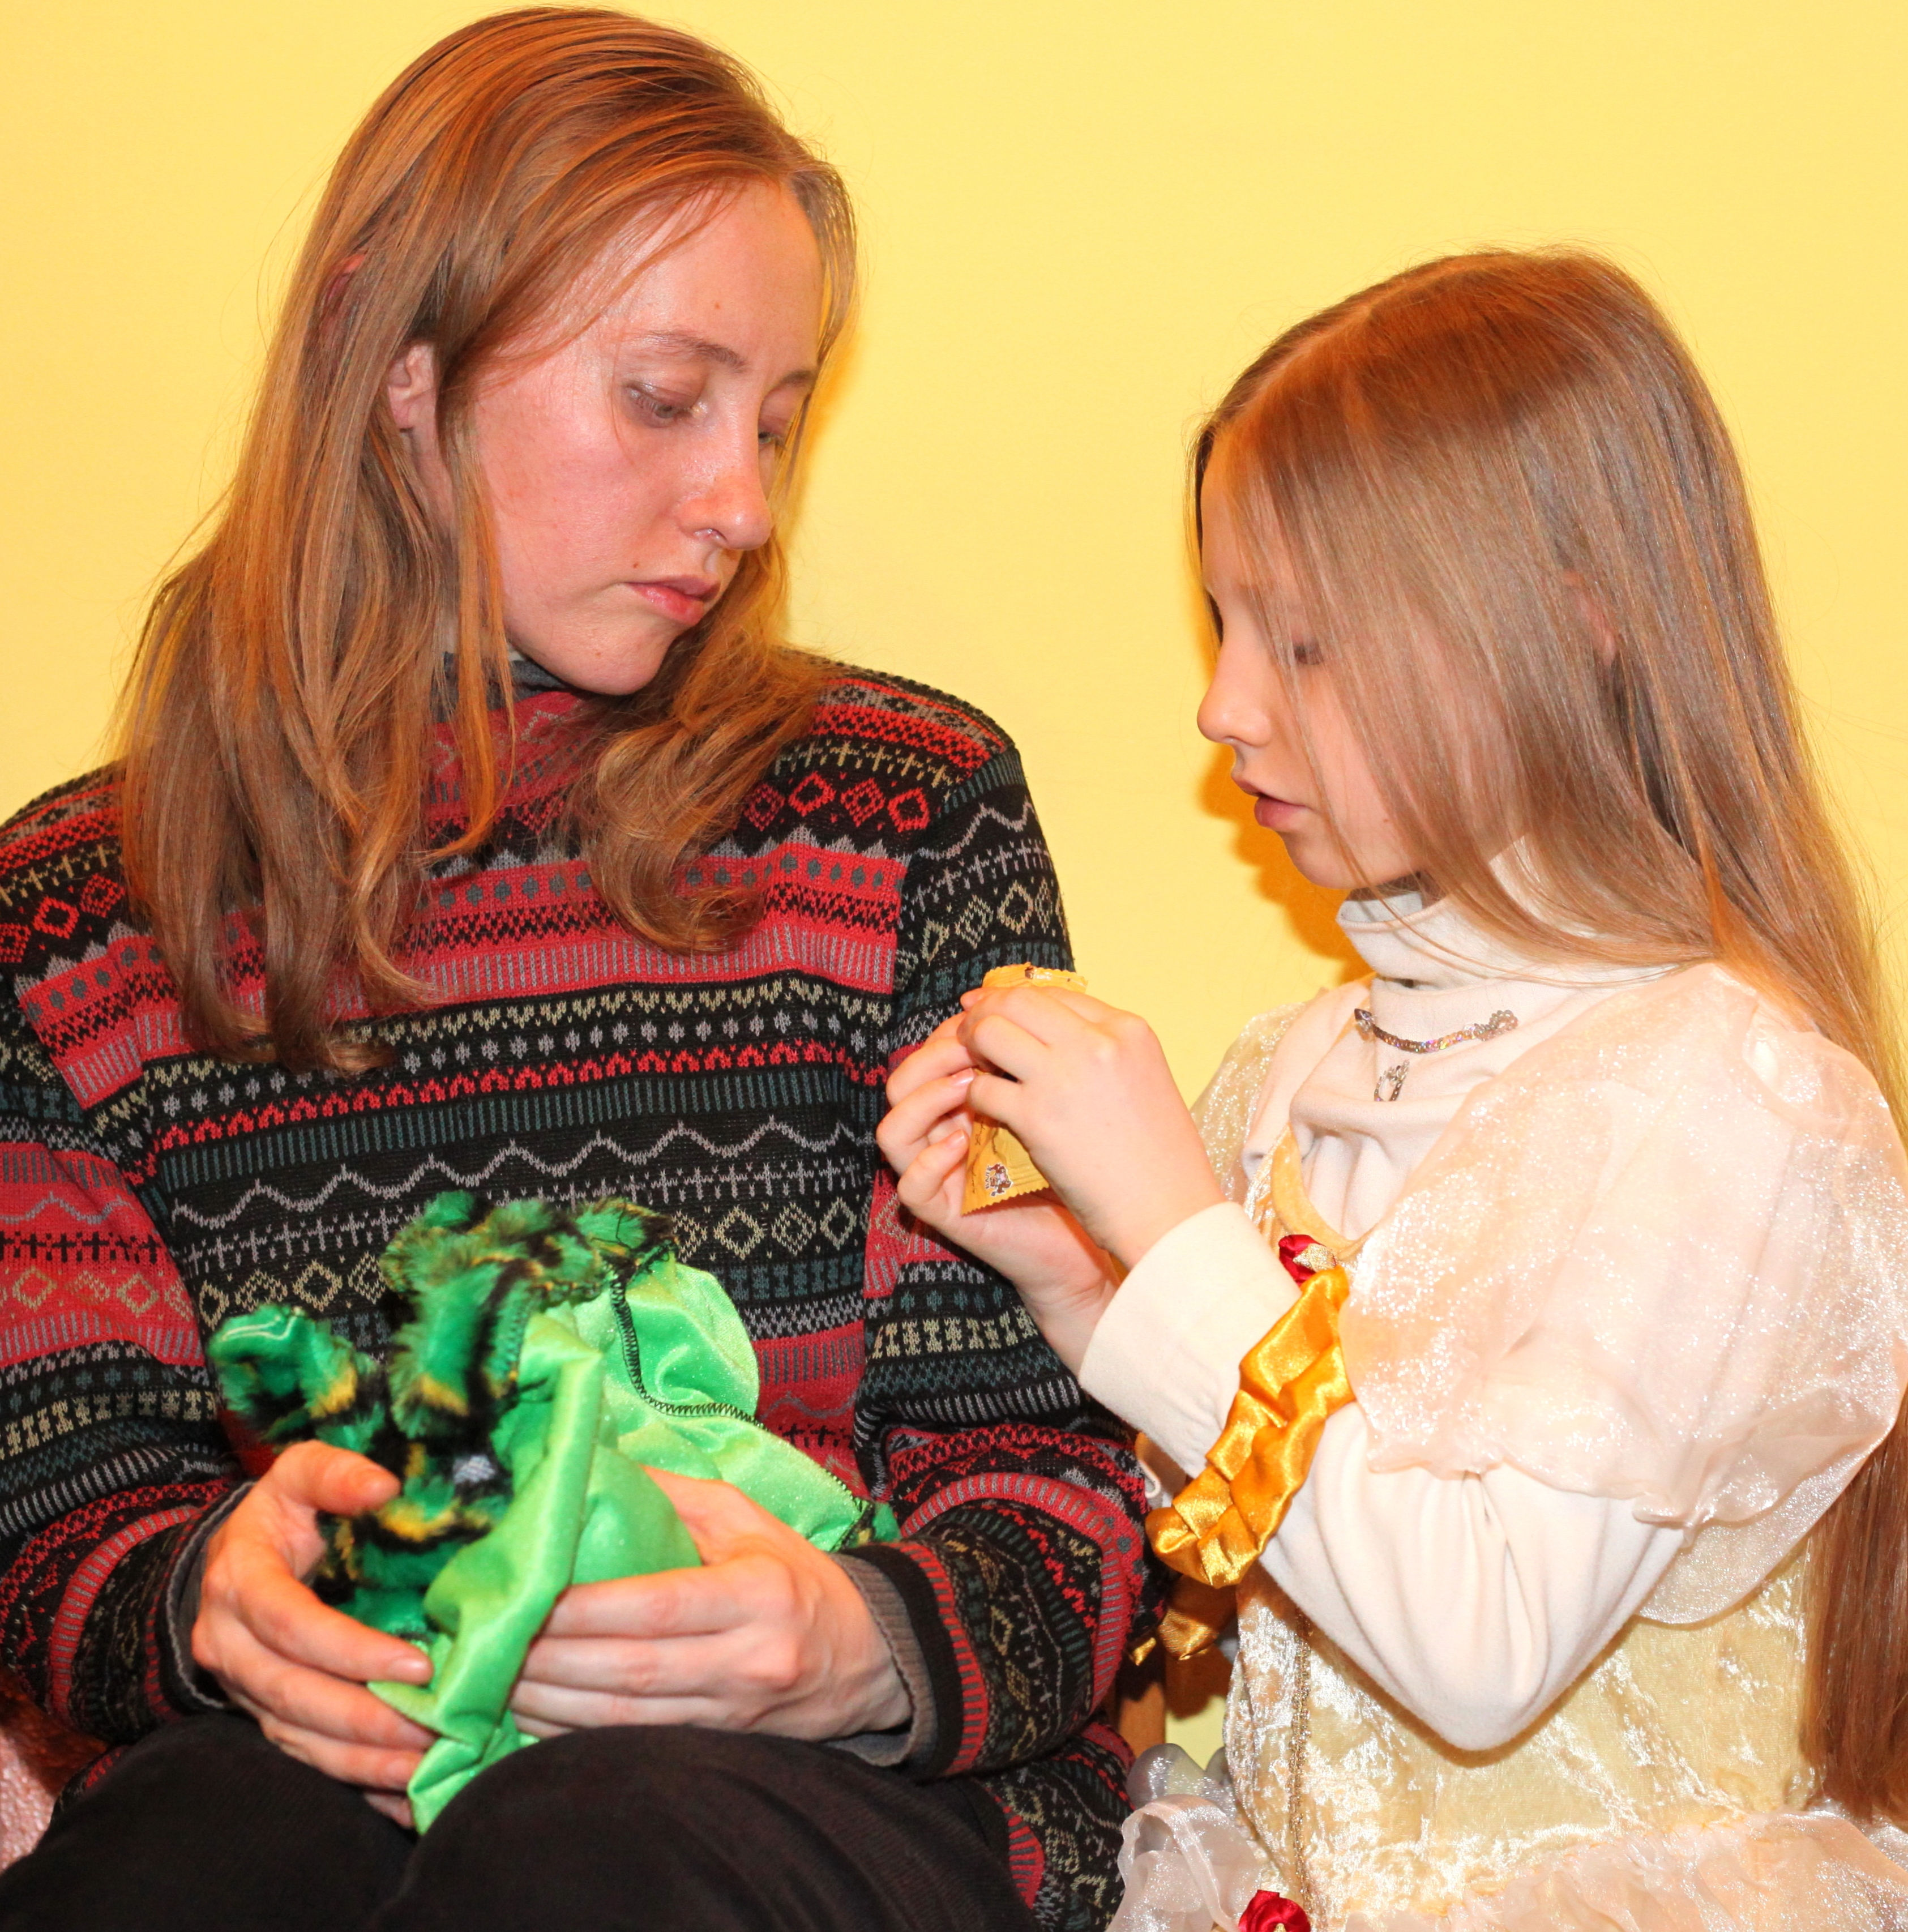 a beautiful blond woman with a beautiful blond girl in a Catholic kindergarten, photo 1